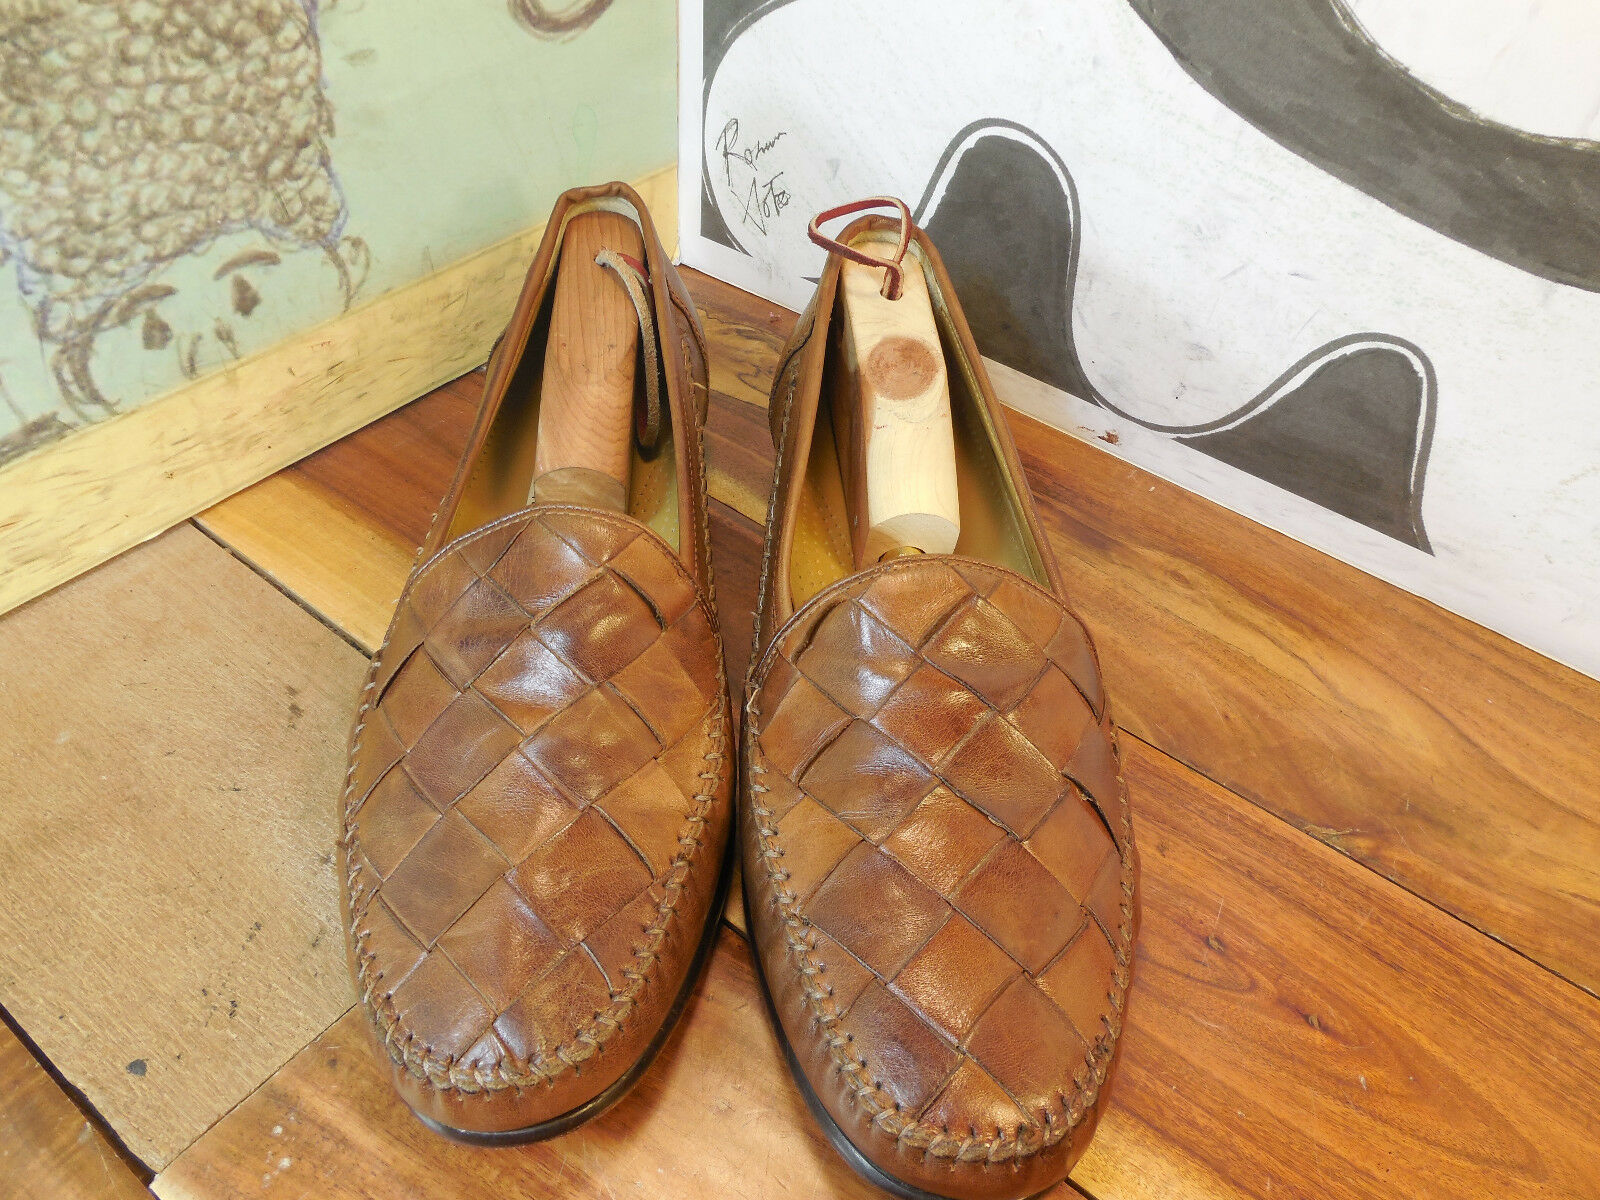 Cole Haan Brown Leather Basket Weave Loafers in Men's 9M #C09067 Made in Loafers India 927d75